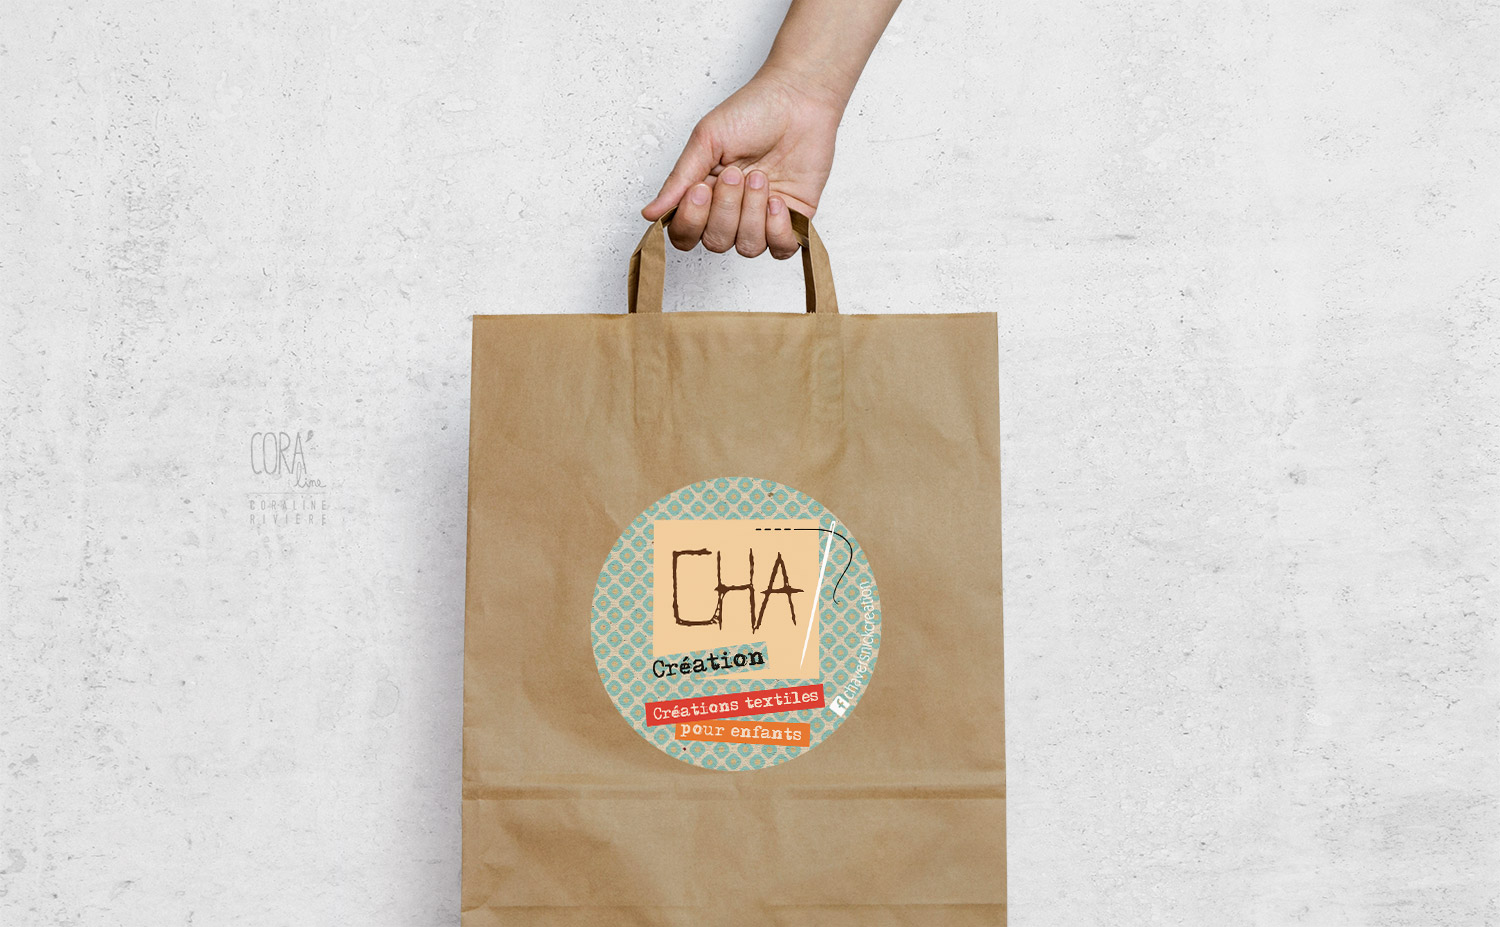 packaging cha creation creatrice textile pour enfant1